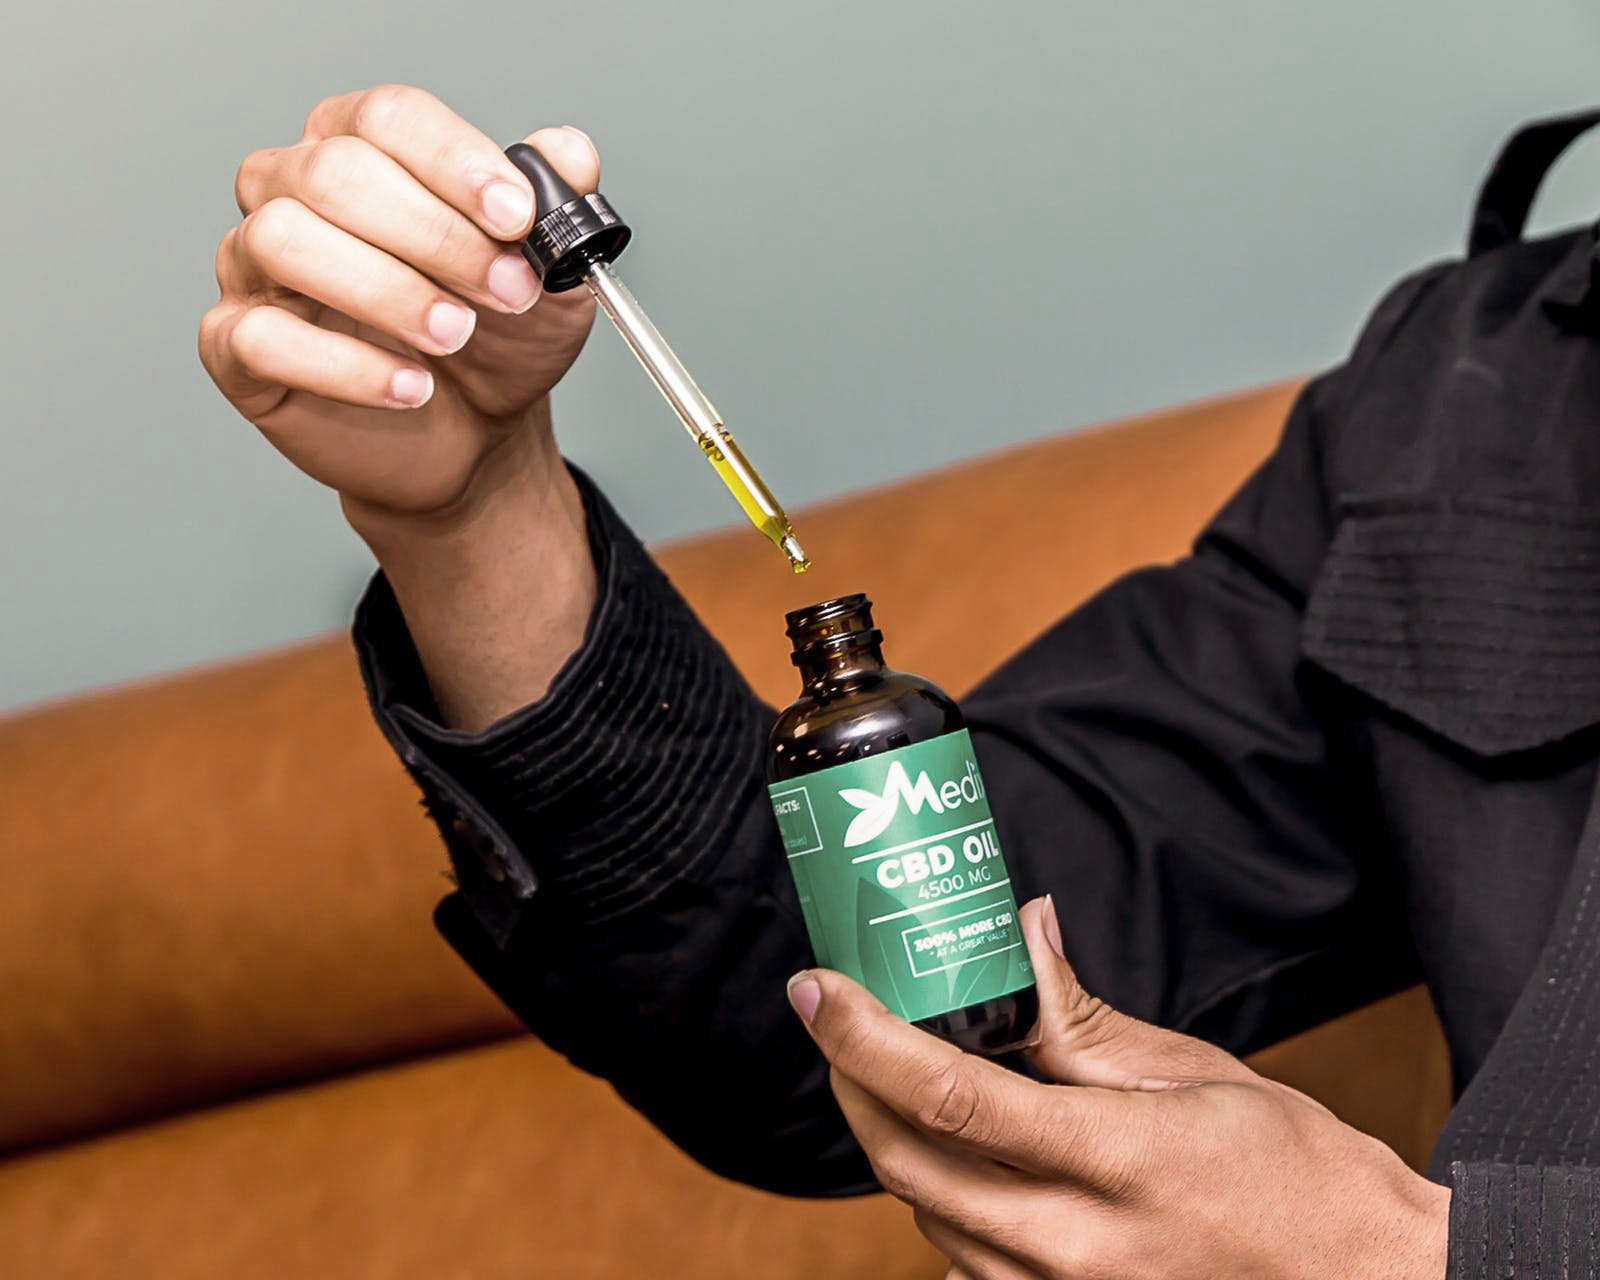 Find Out How CBD Oil Can Help You Quit Smoking Cigarettes 31 Cannabis is Legal in Vermont, But Gifting it Isnt